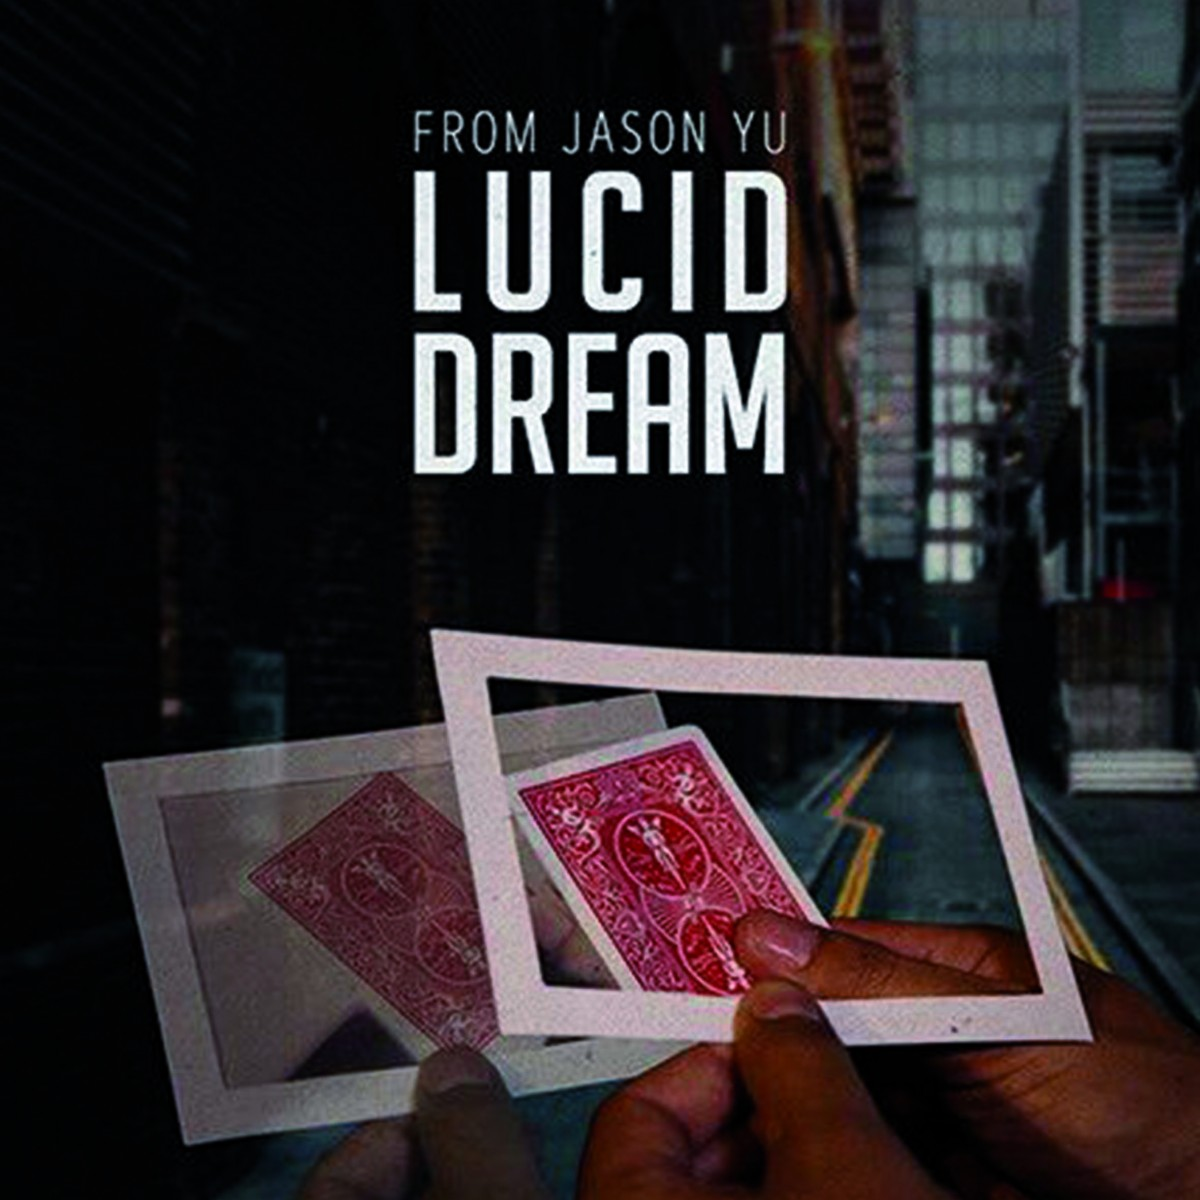 Lucid Dream DVD and Gimmicks